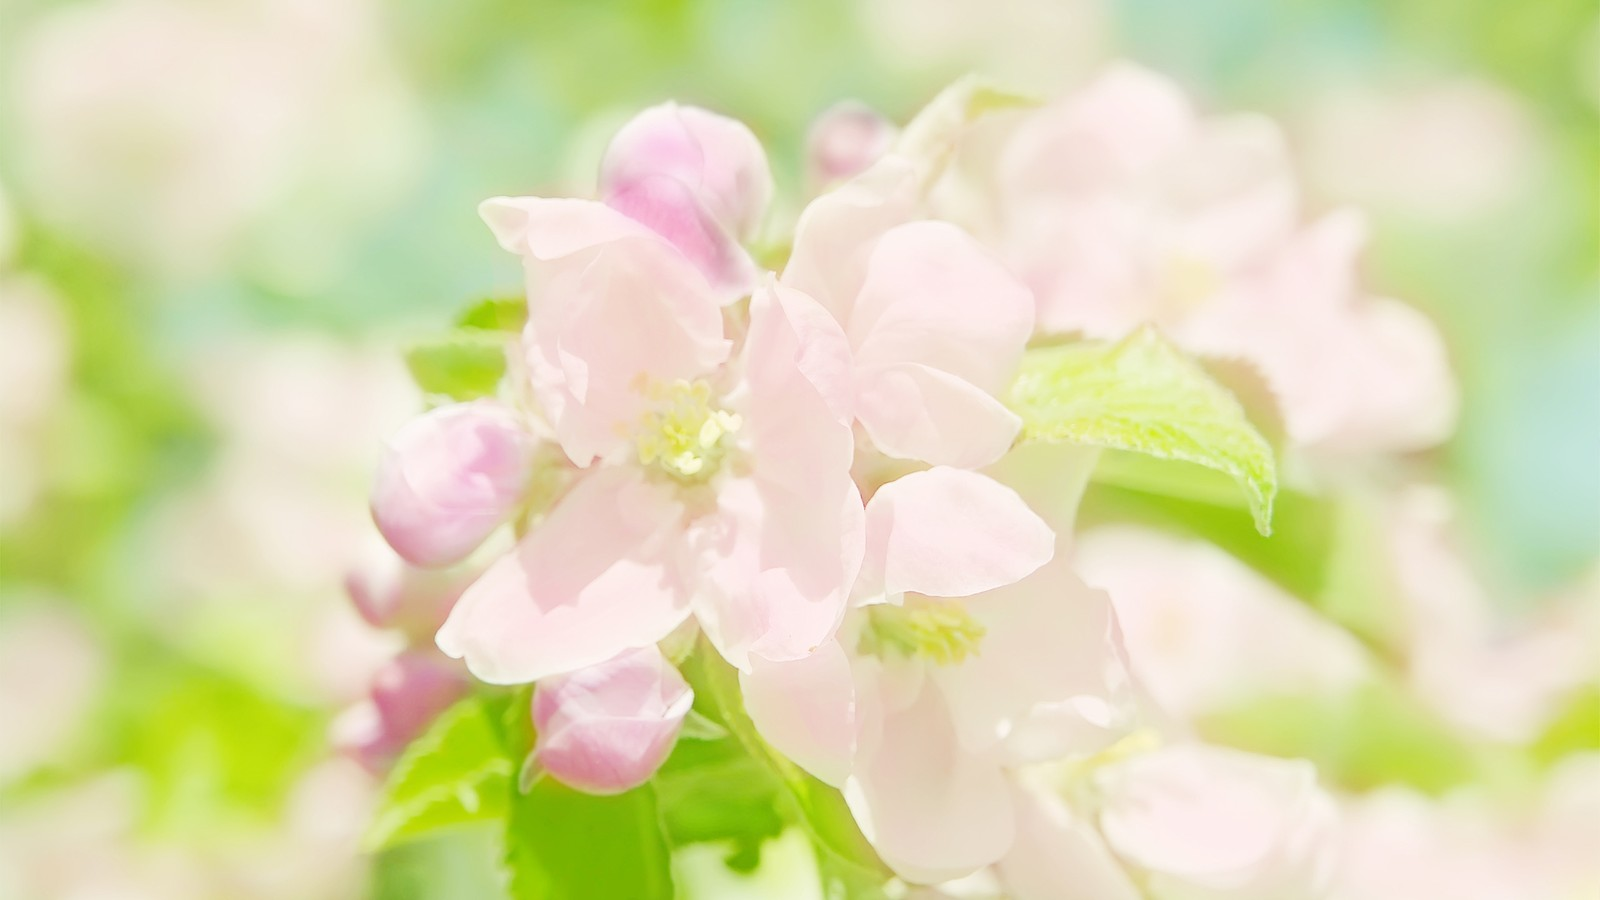 Elegant Flower photography : Dreamy Sweet Wildflowers Widescreen Wallpapers 1600x900第27